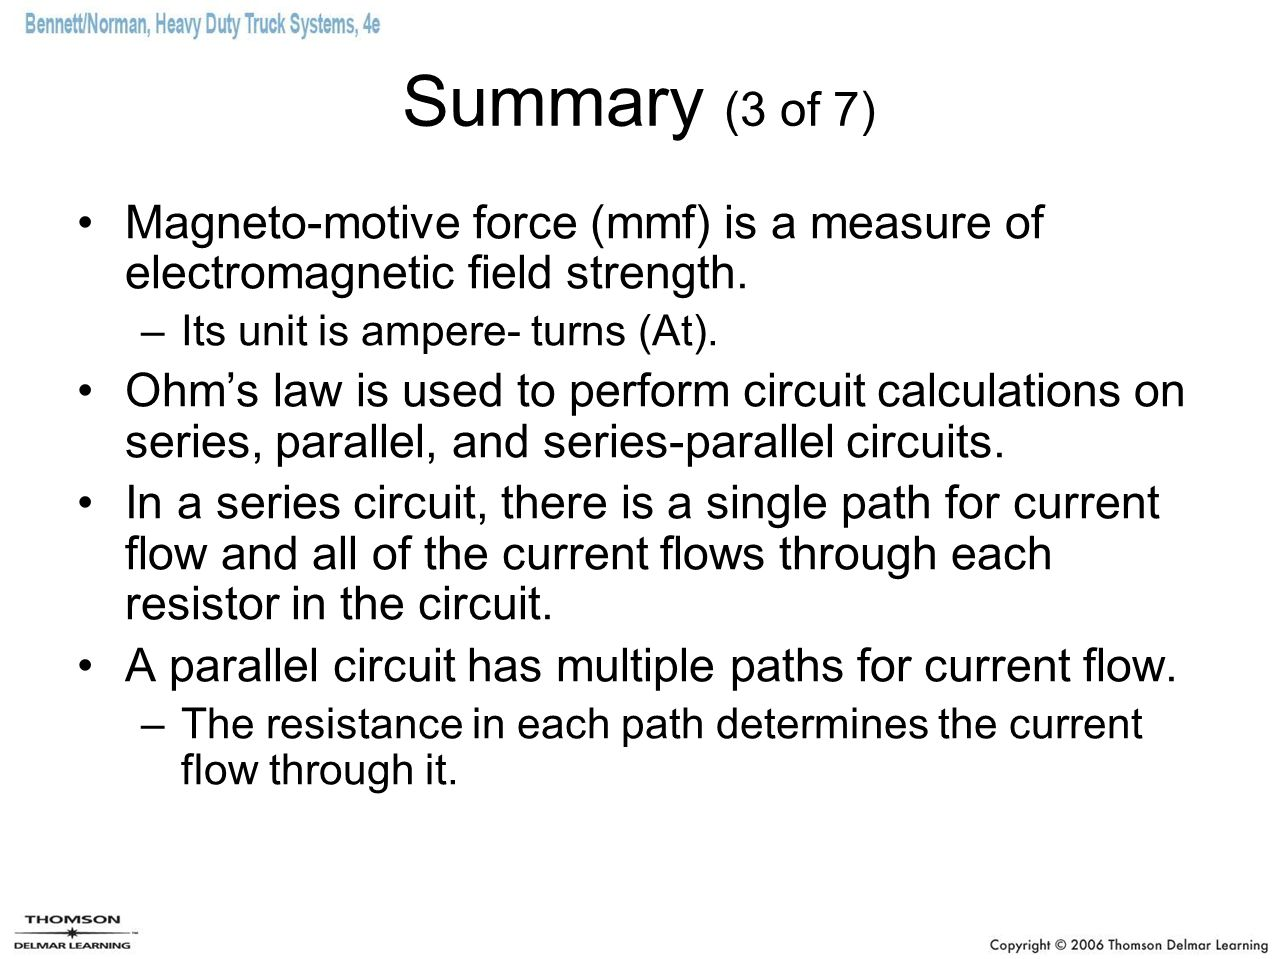 Summary (3 of 7) Magneto-motive force (mmf) is a measure of electromagnetic field strength. Its unit is ampere- turns (At).